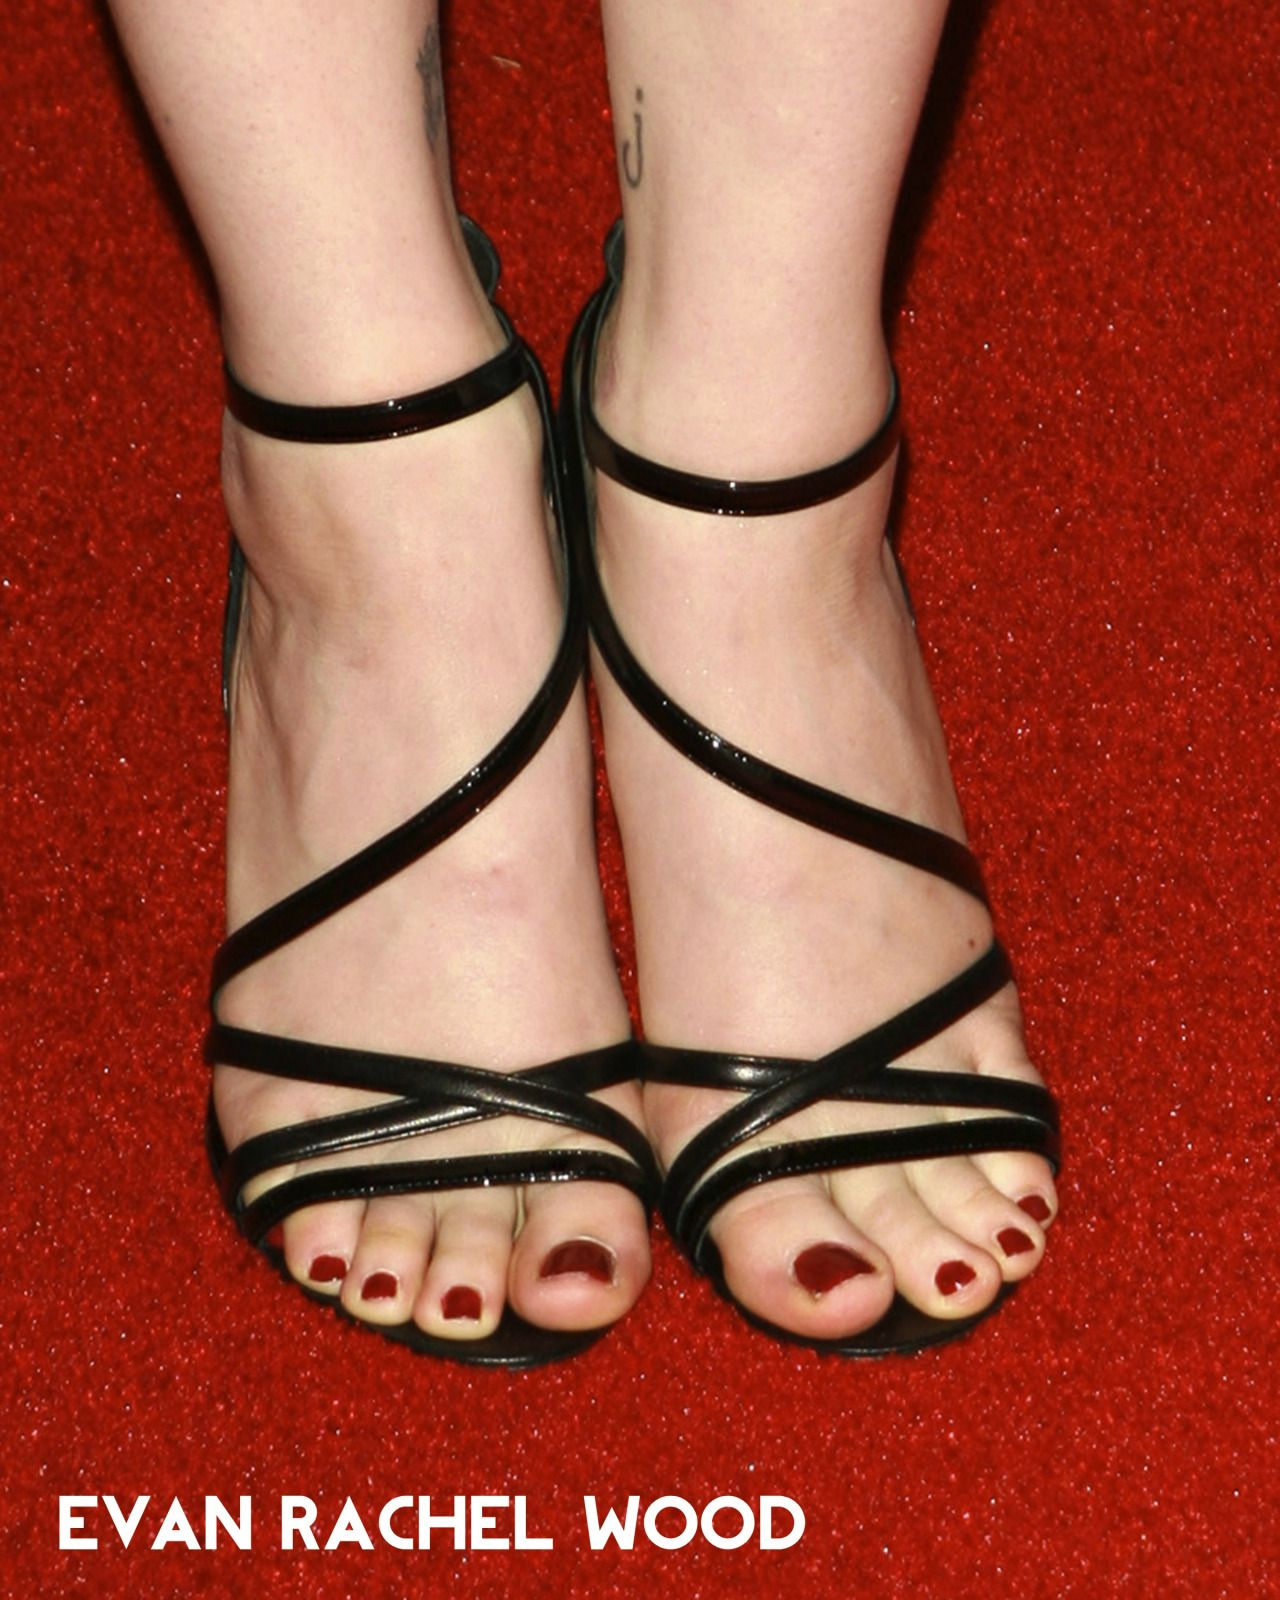 Celebrity fetish foot gallery picture possible